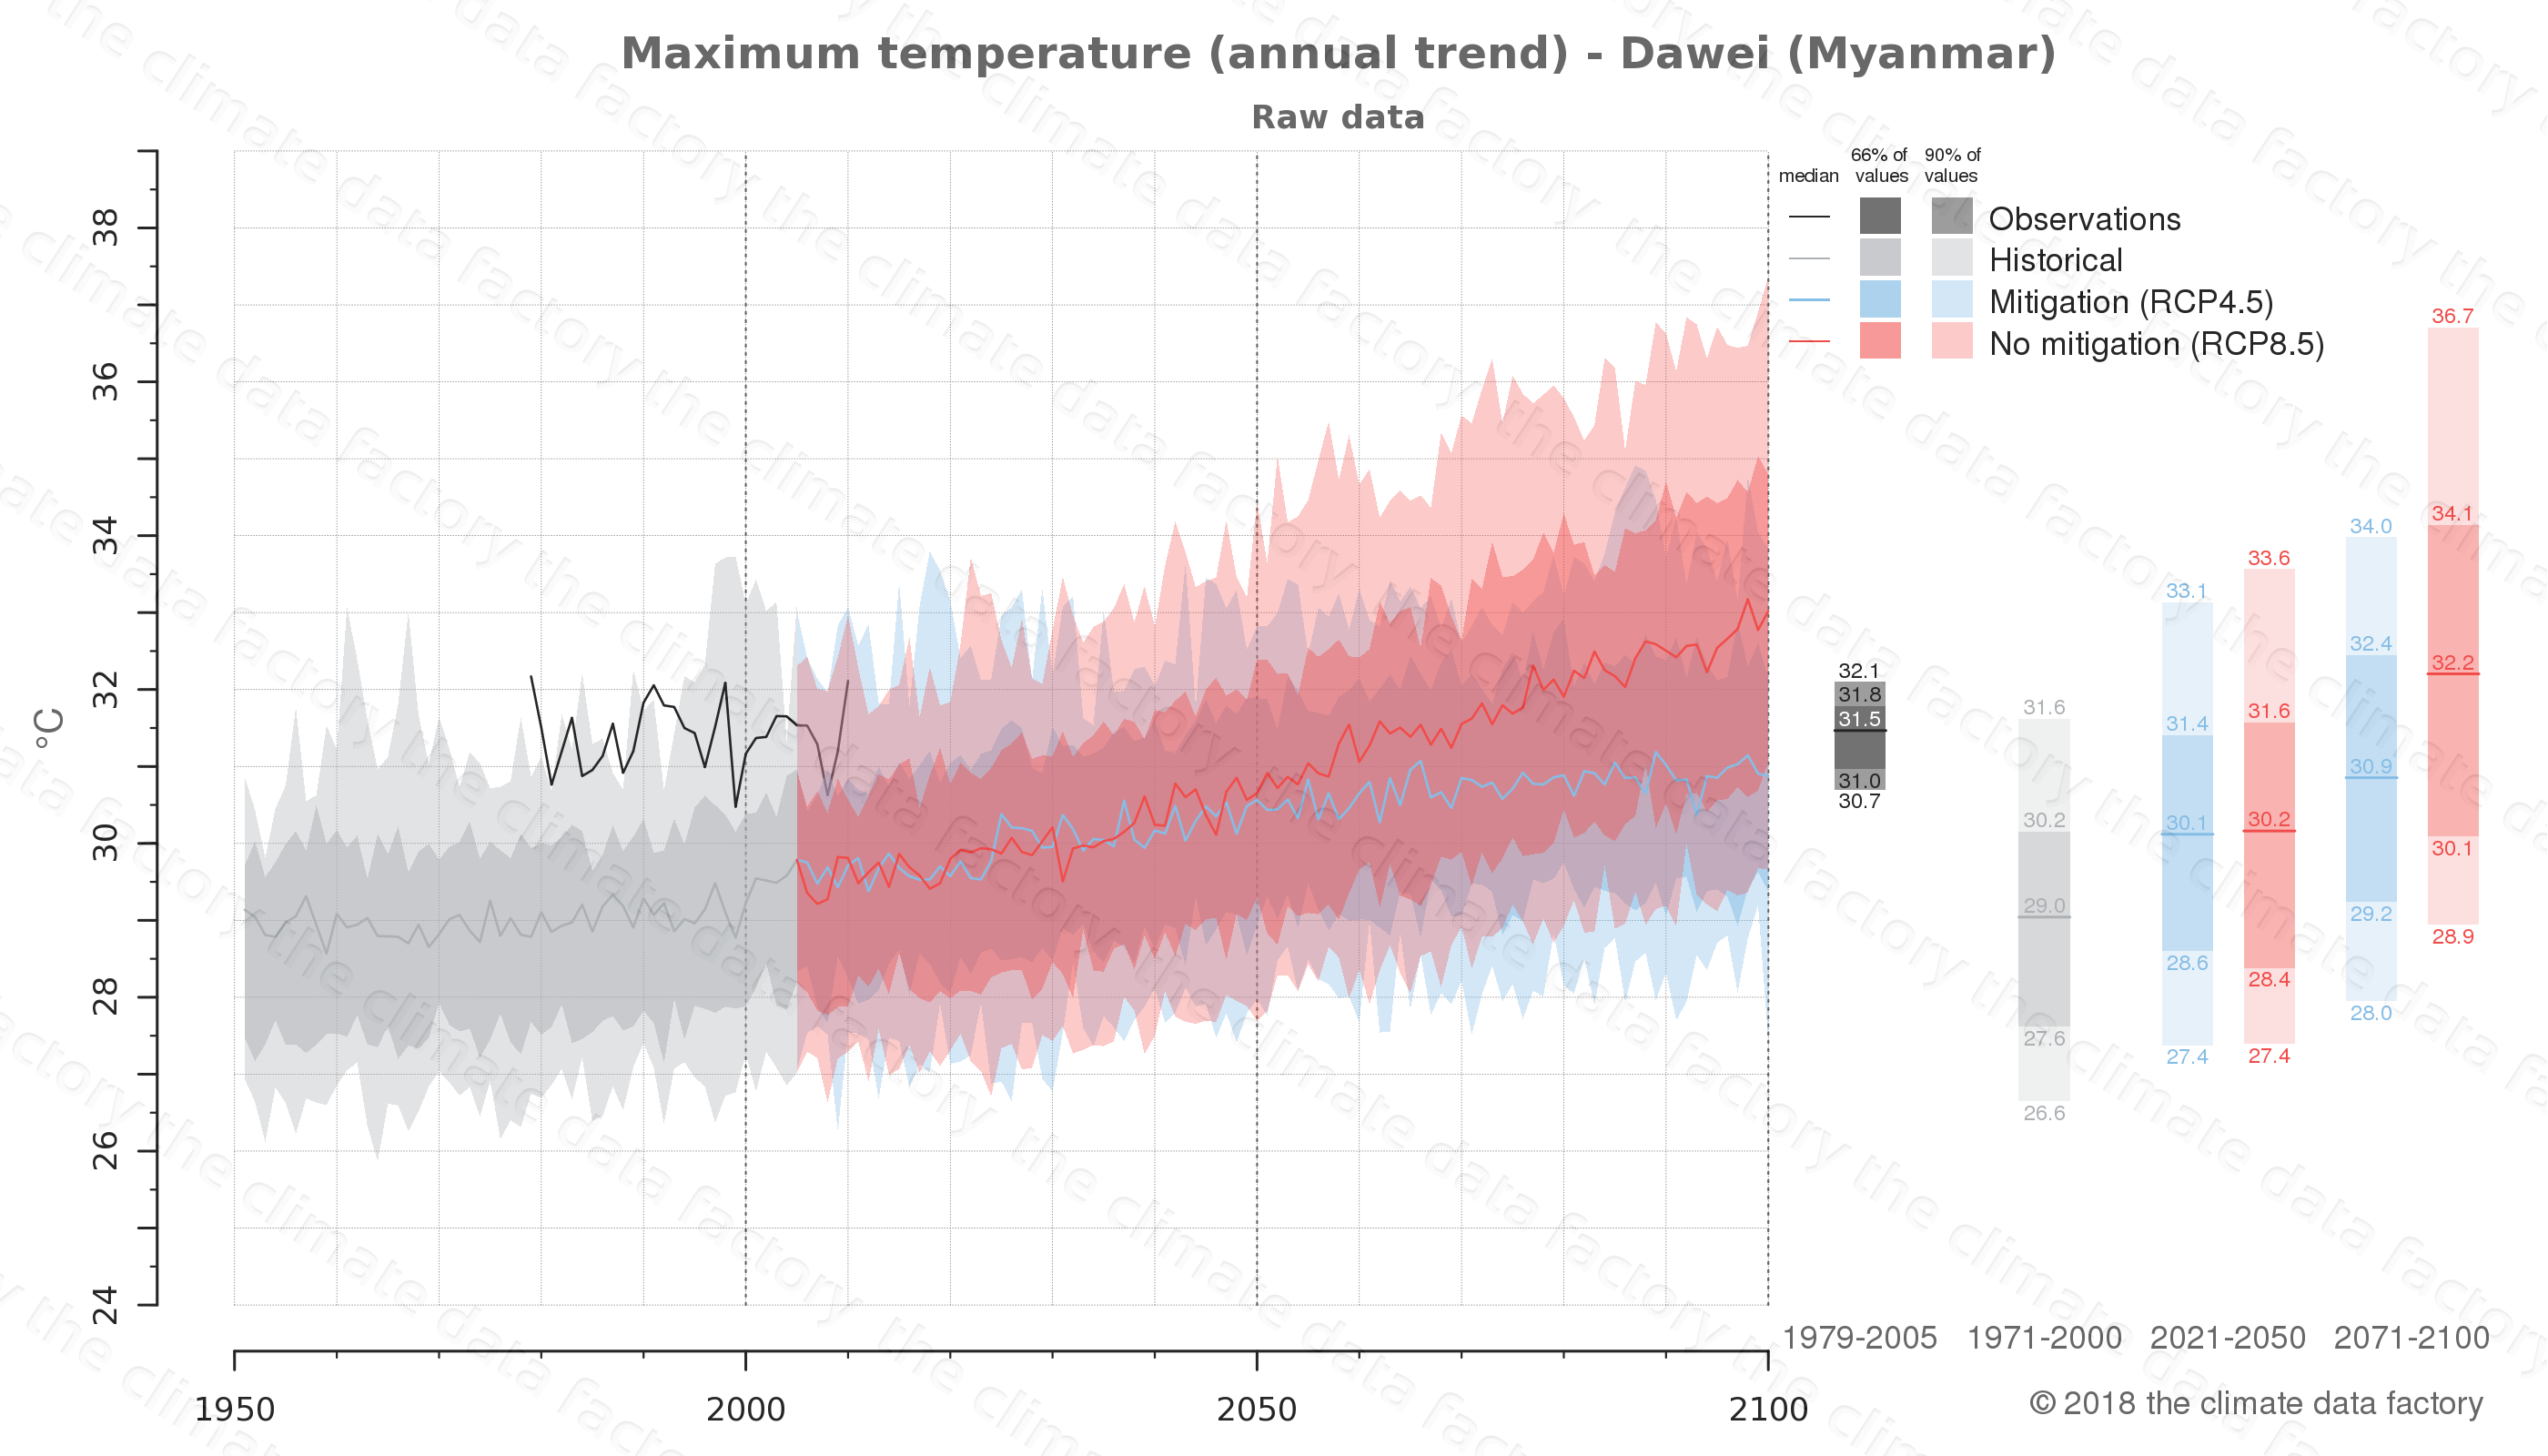 climate change data policy adaptation climate graph city data maximum-temperature dawei myanmar